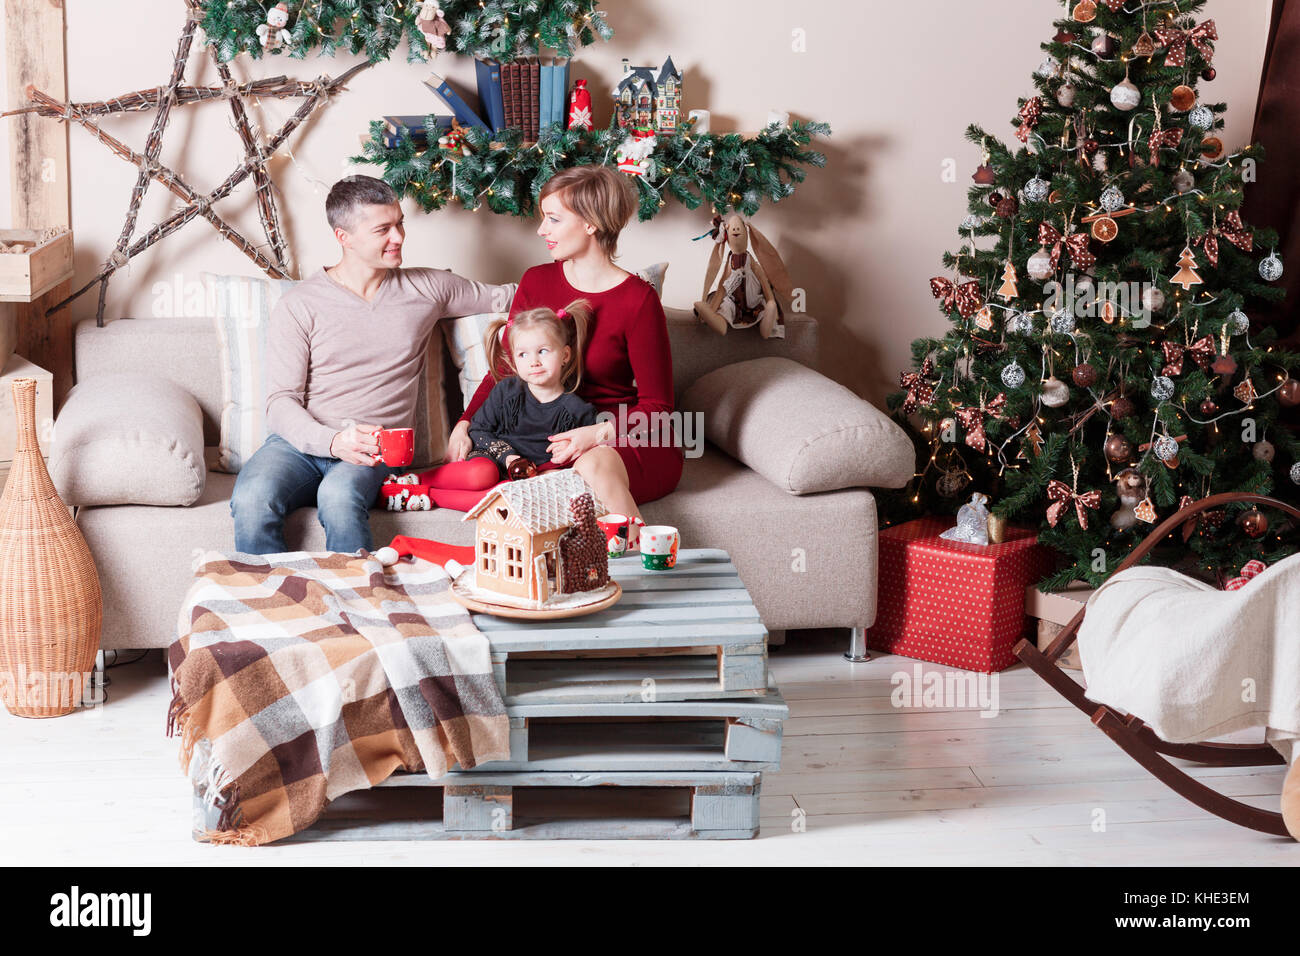 Portrait of young friendly family on Christmas morning. Father, mother and daughter - Stock Image